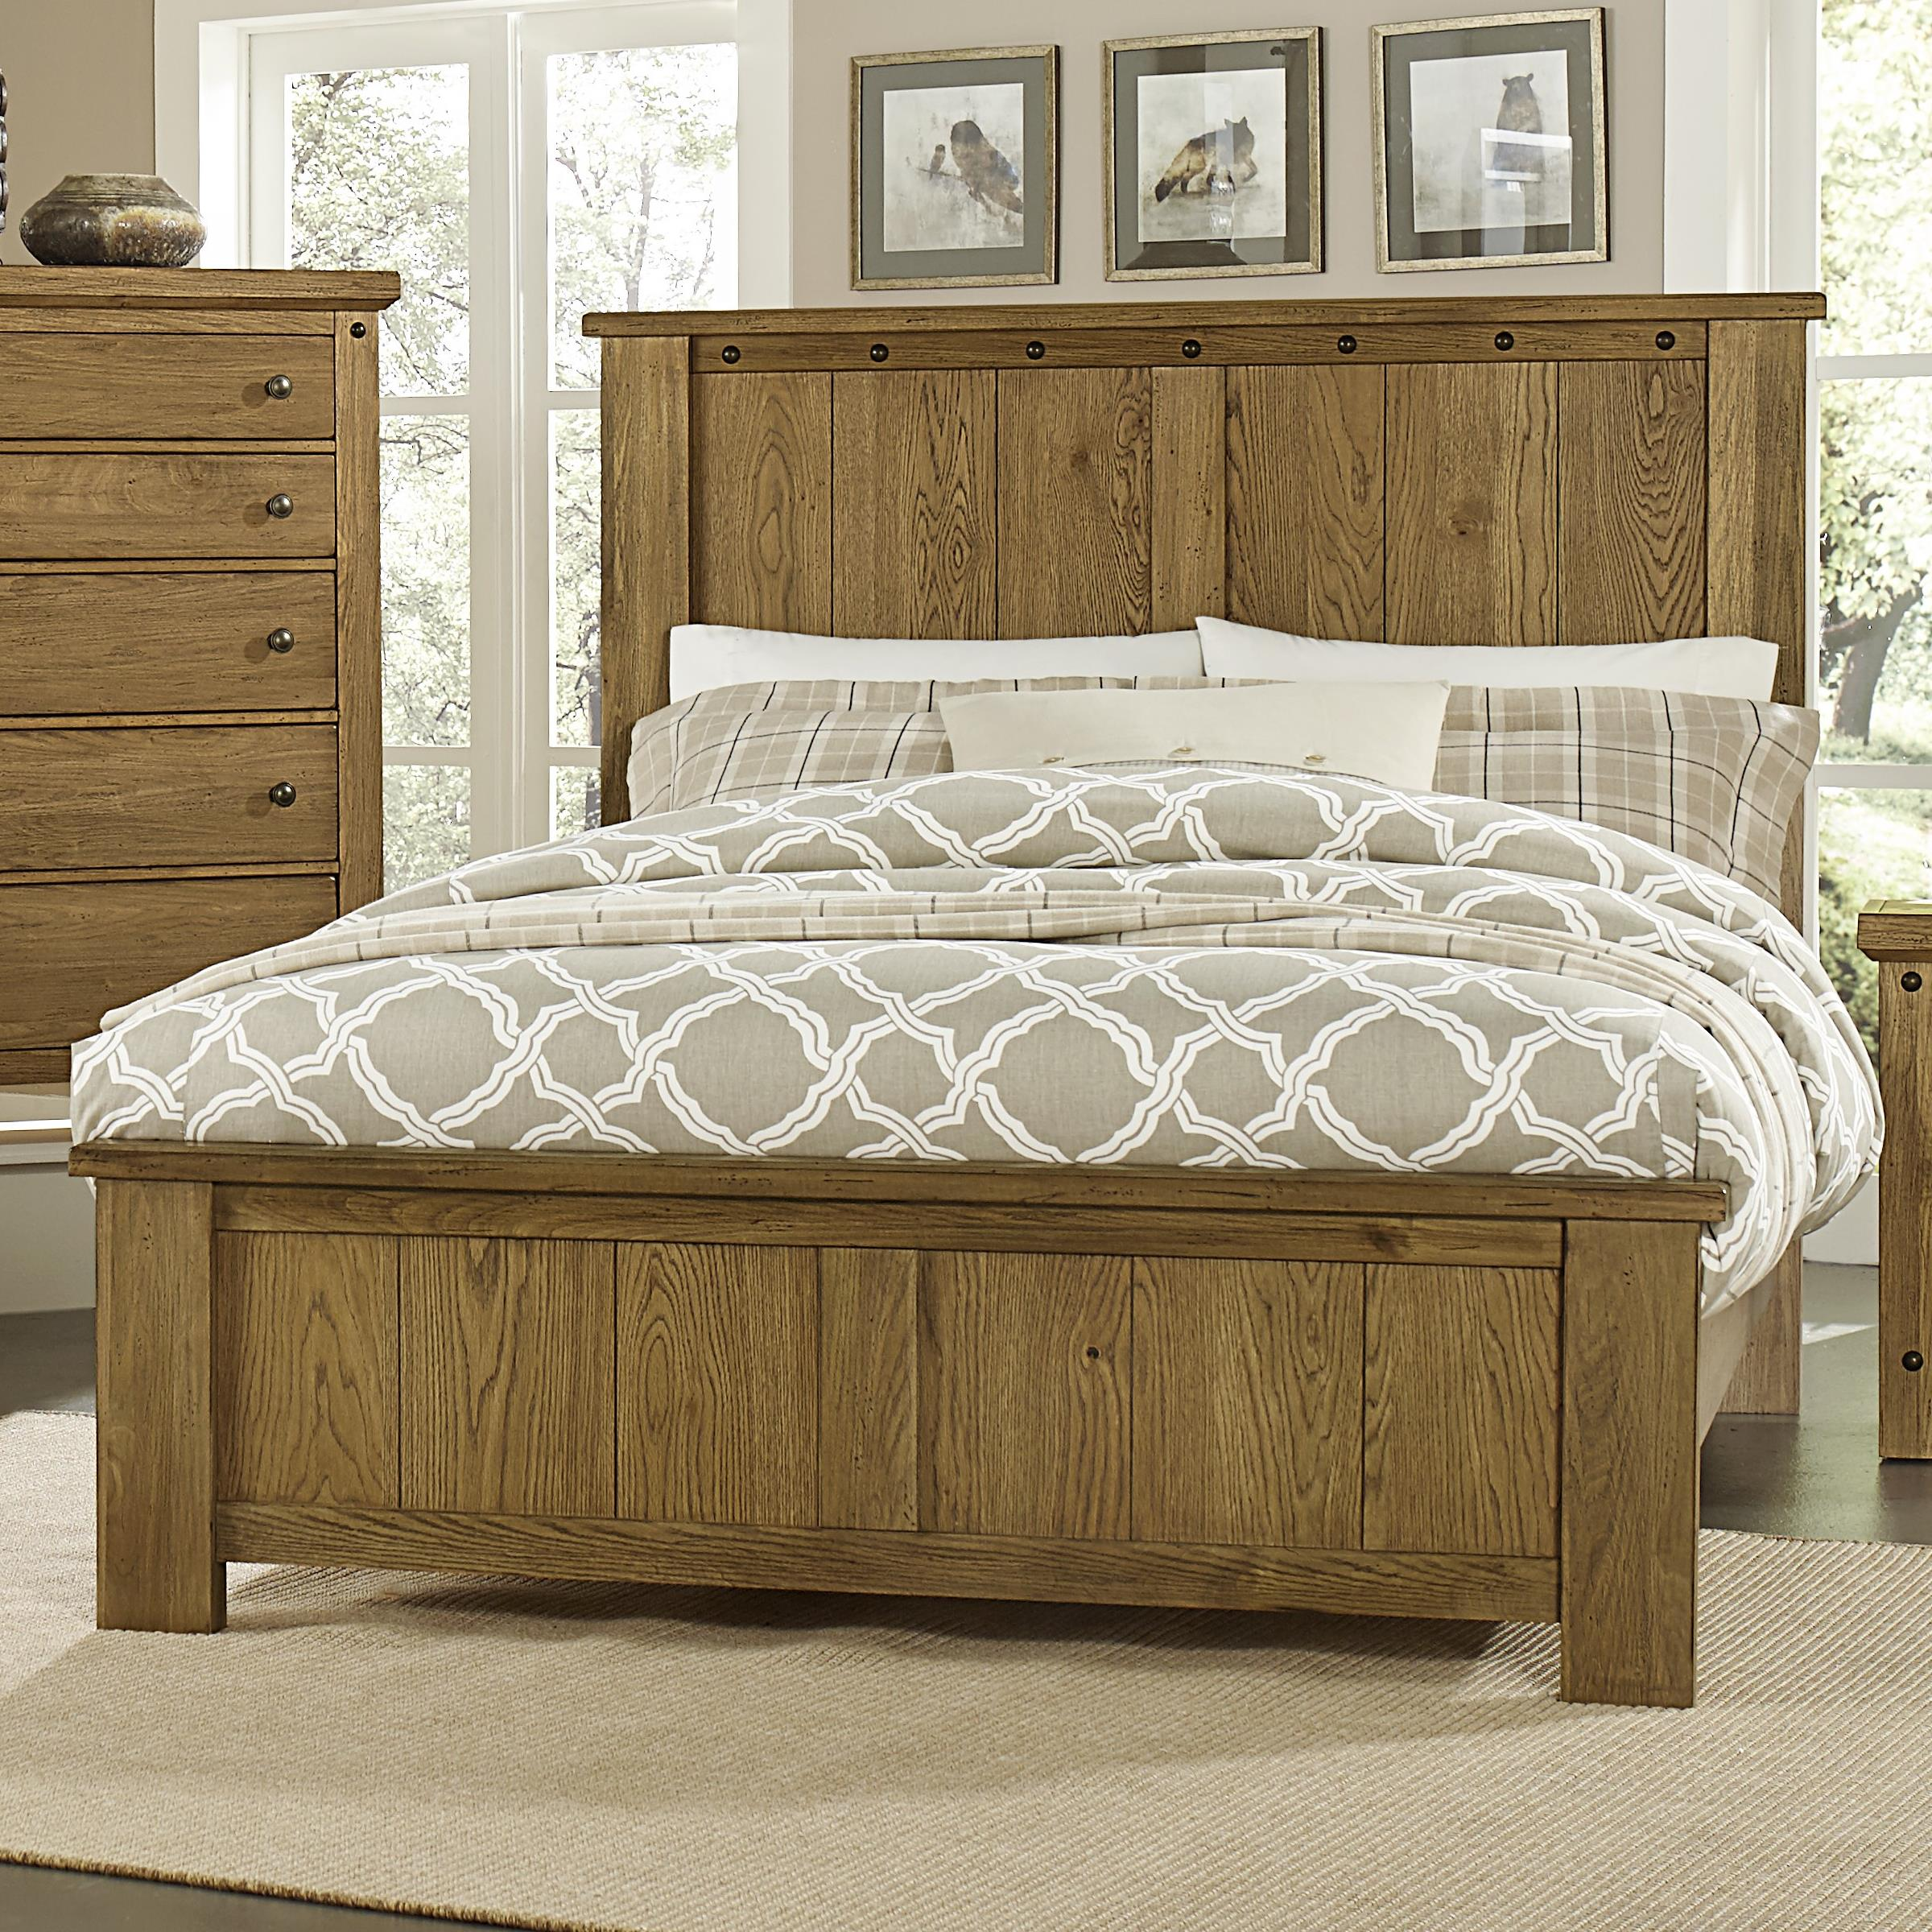 Vaughan Bassett Collaboration Queen Panel Bed - Item Number: 614-558+855+922